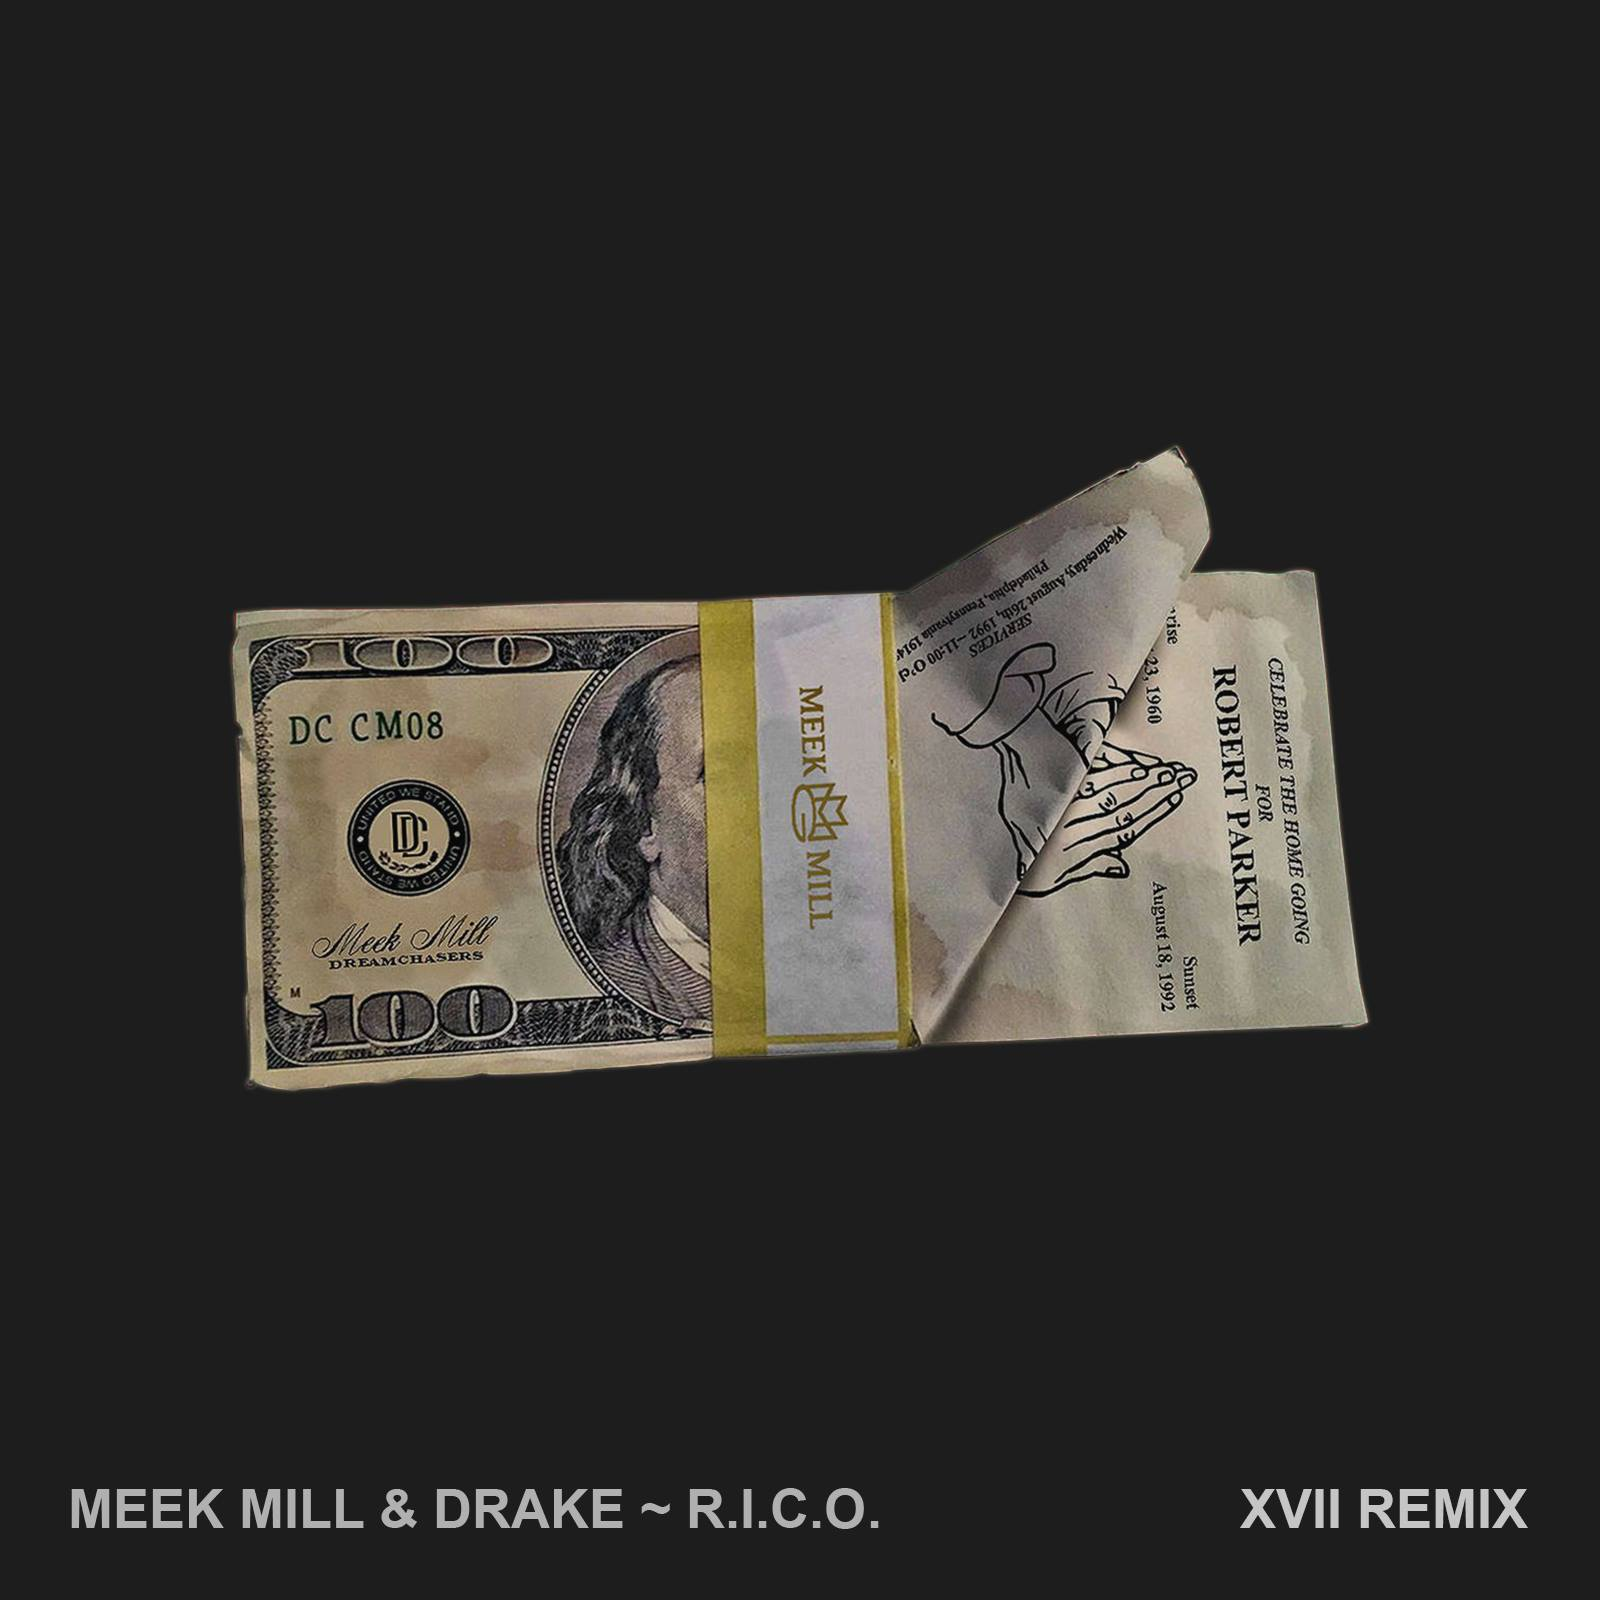 Meek mill pulling up ft. The weeknd – brand new hip hop.